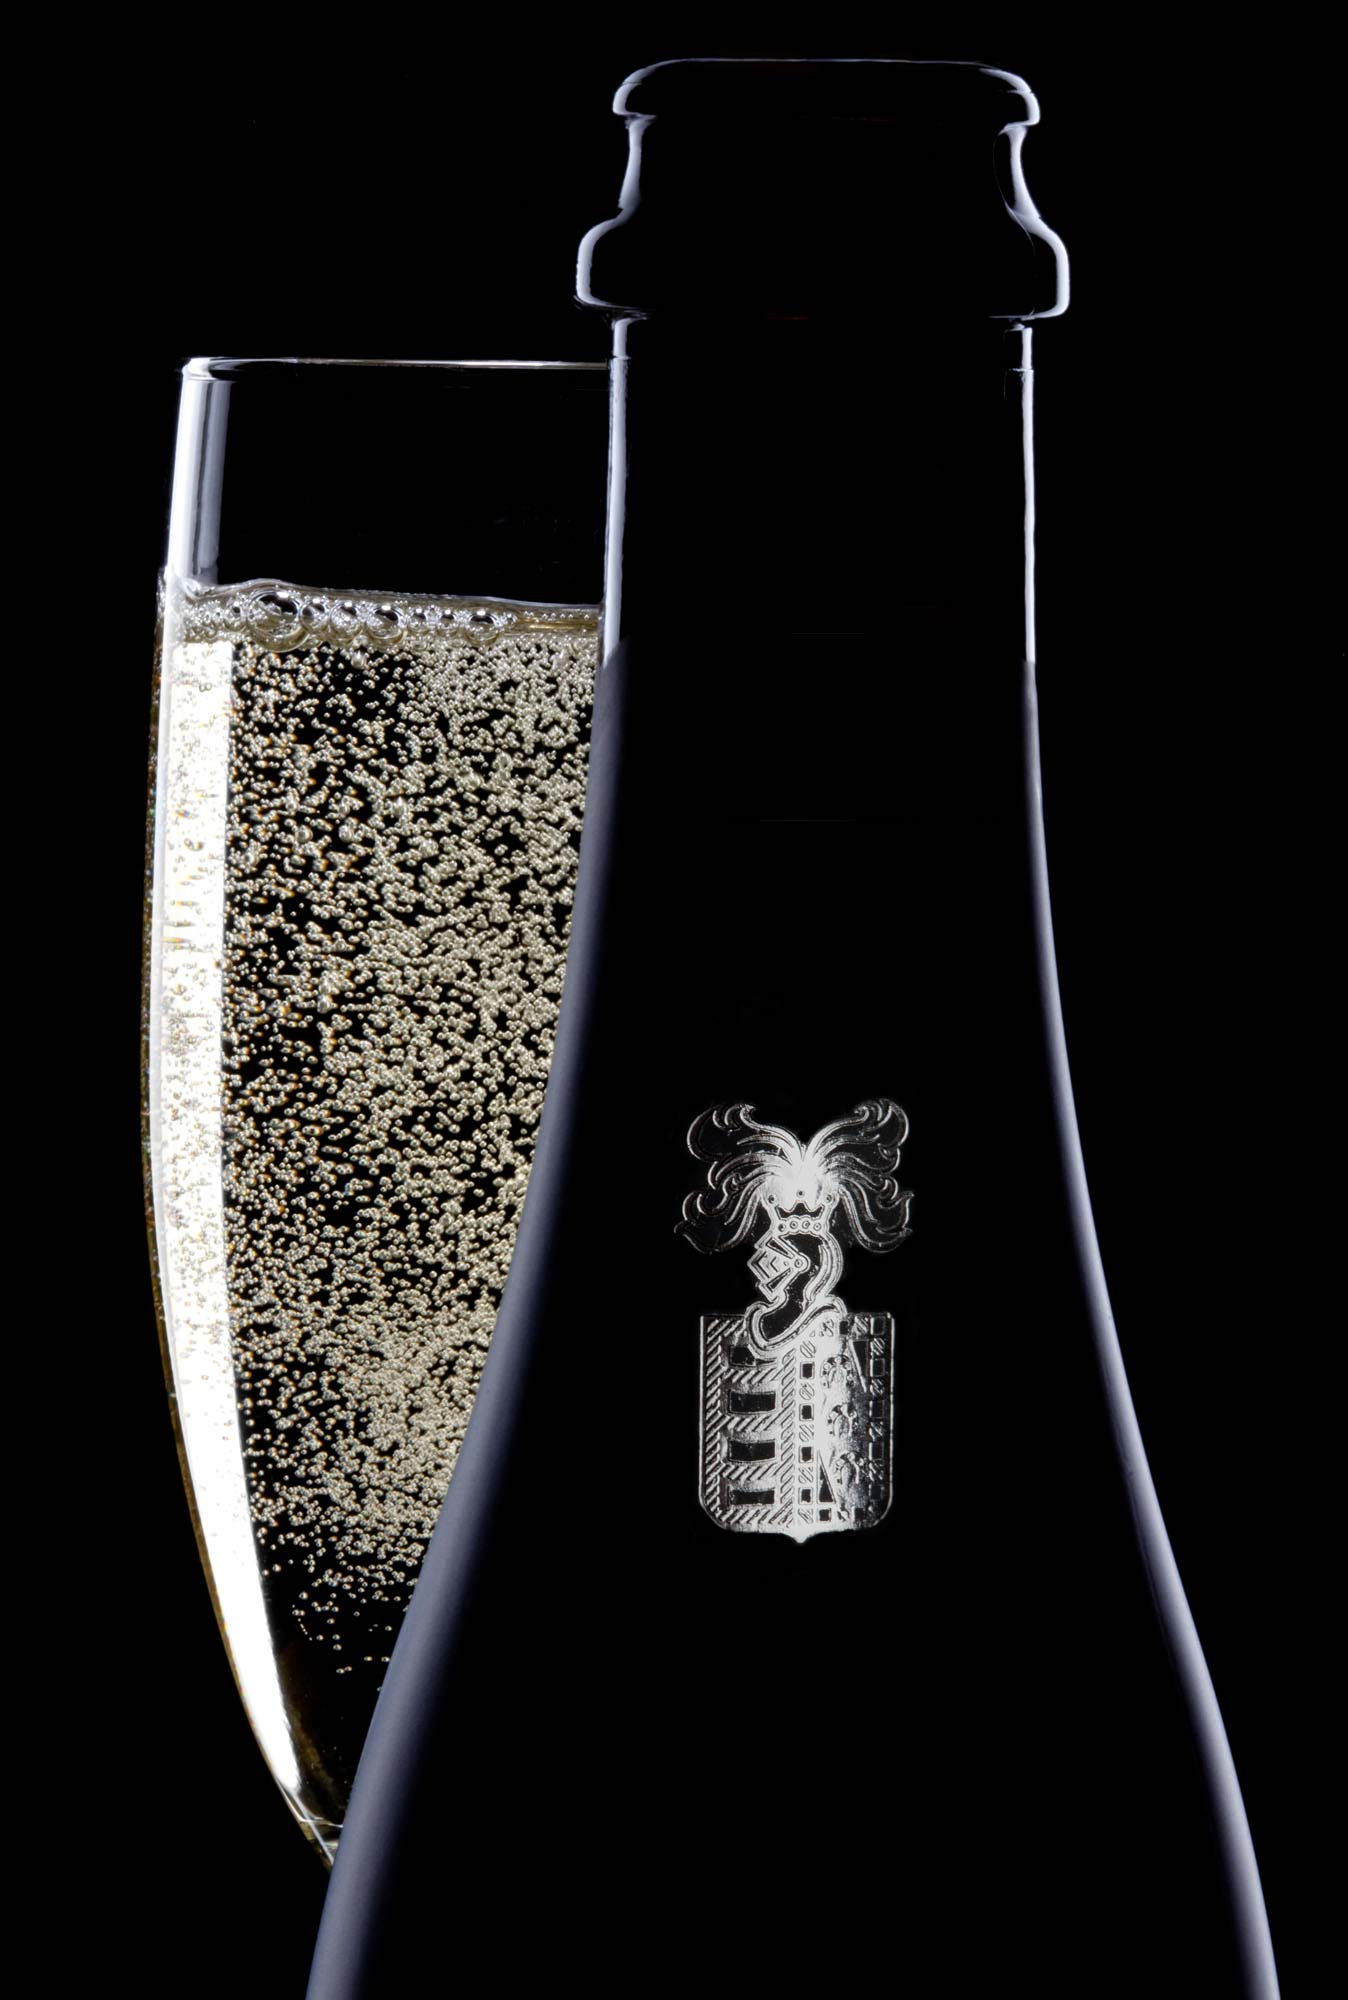 champagne bottle and glass on black. Dramatically lit product photography